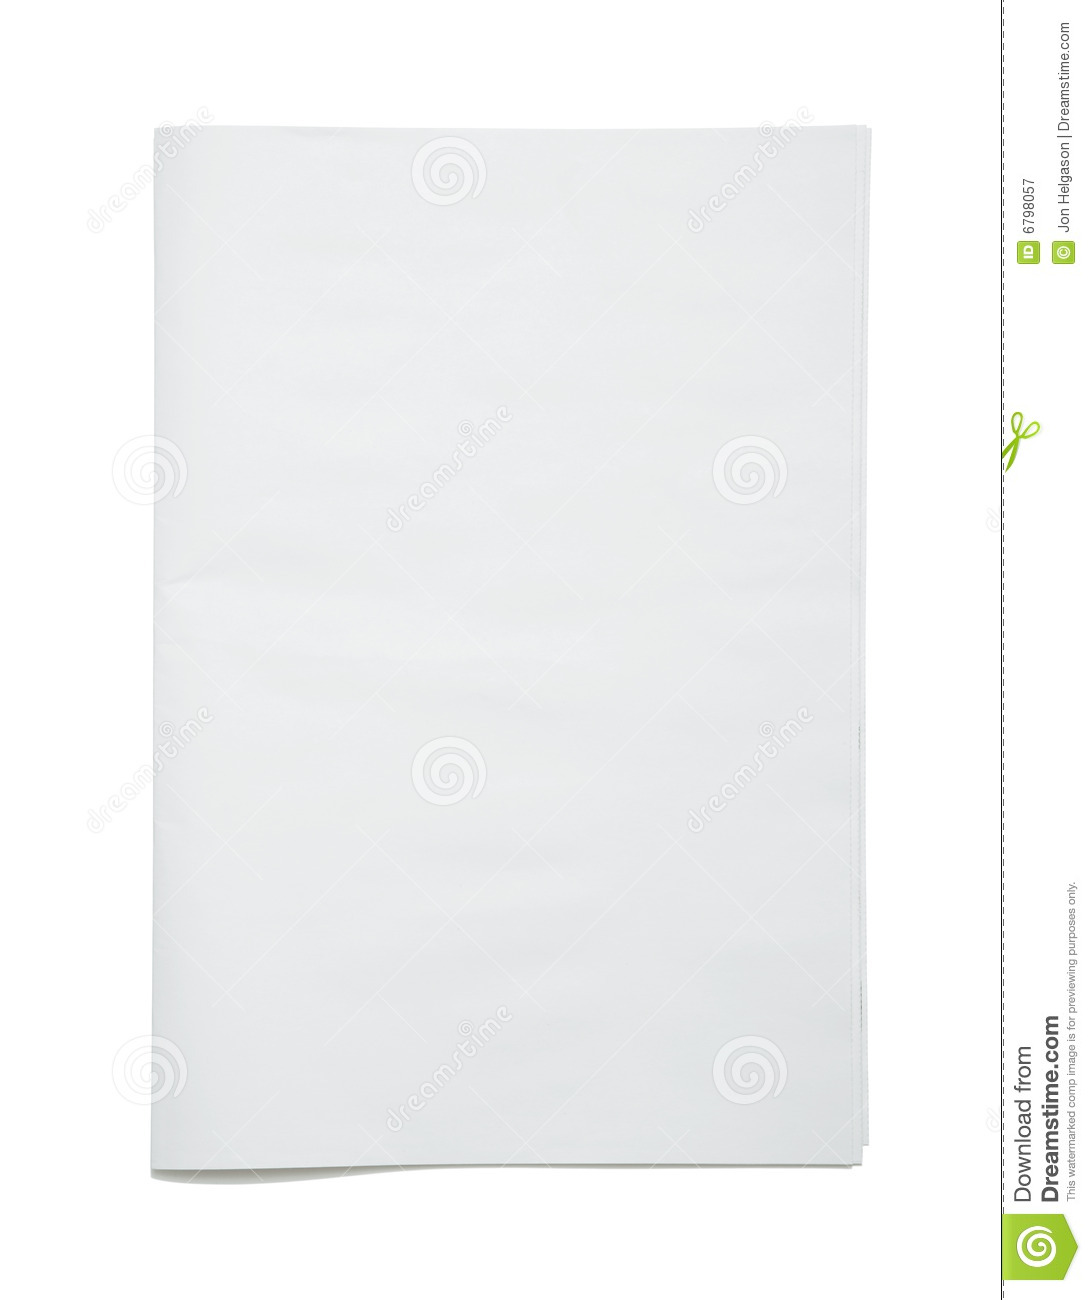 blank newspaper frontpage stock image. image of broadsheet - 6798057